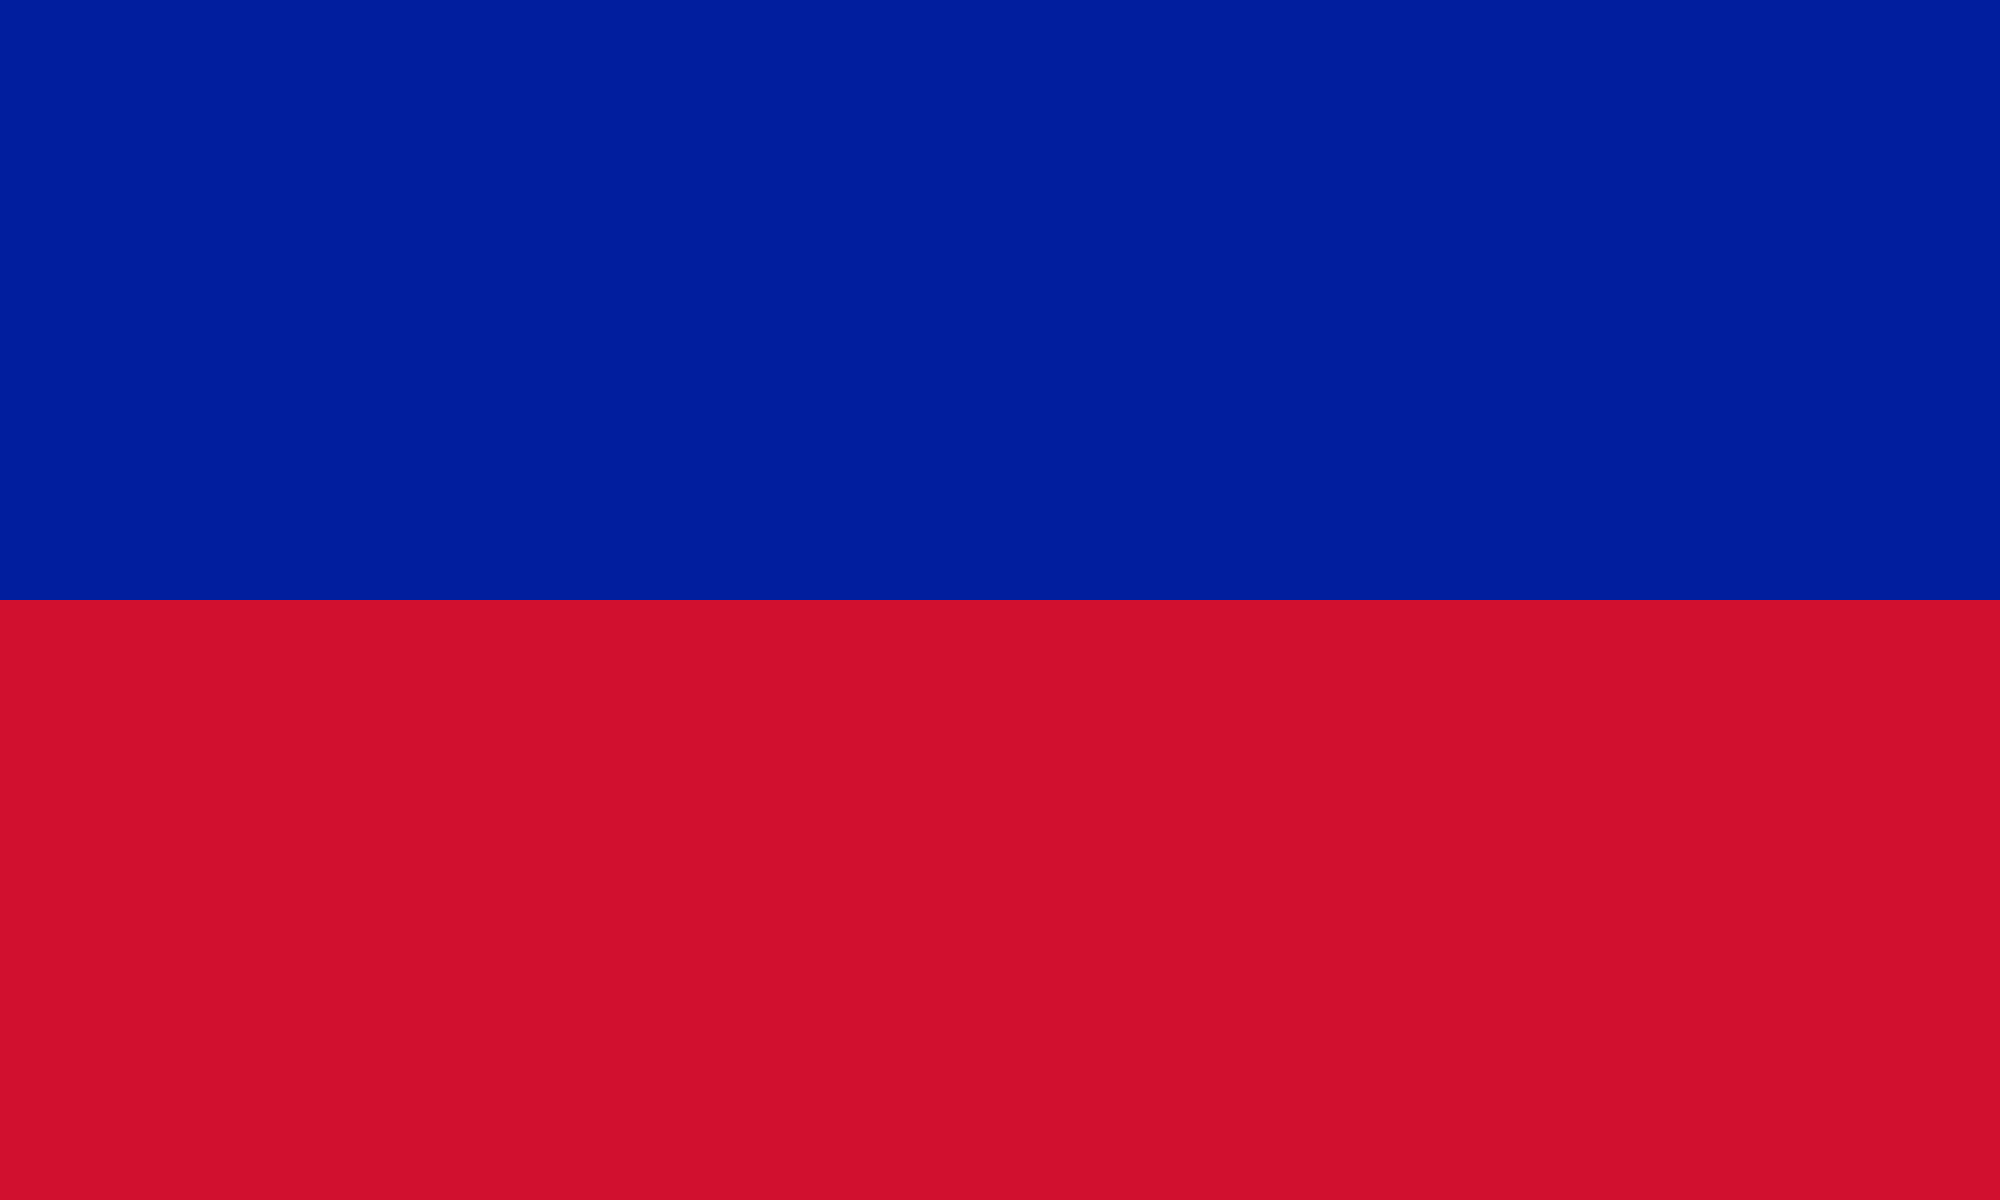 Haiti (Civil flag)